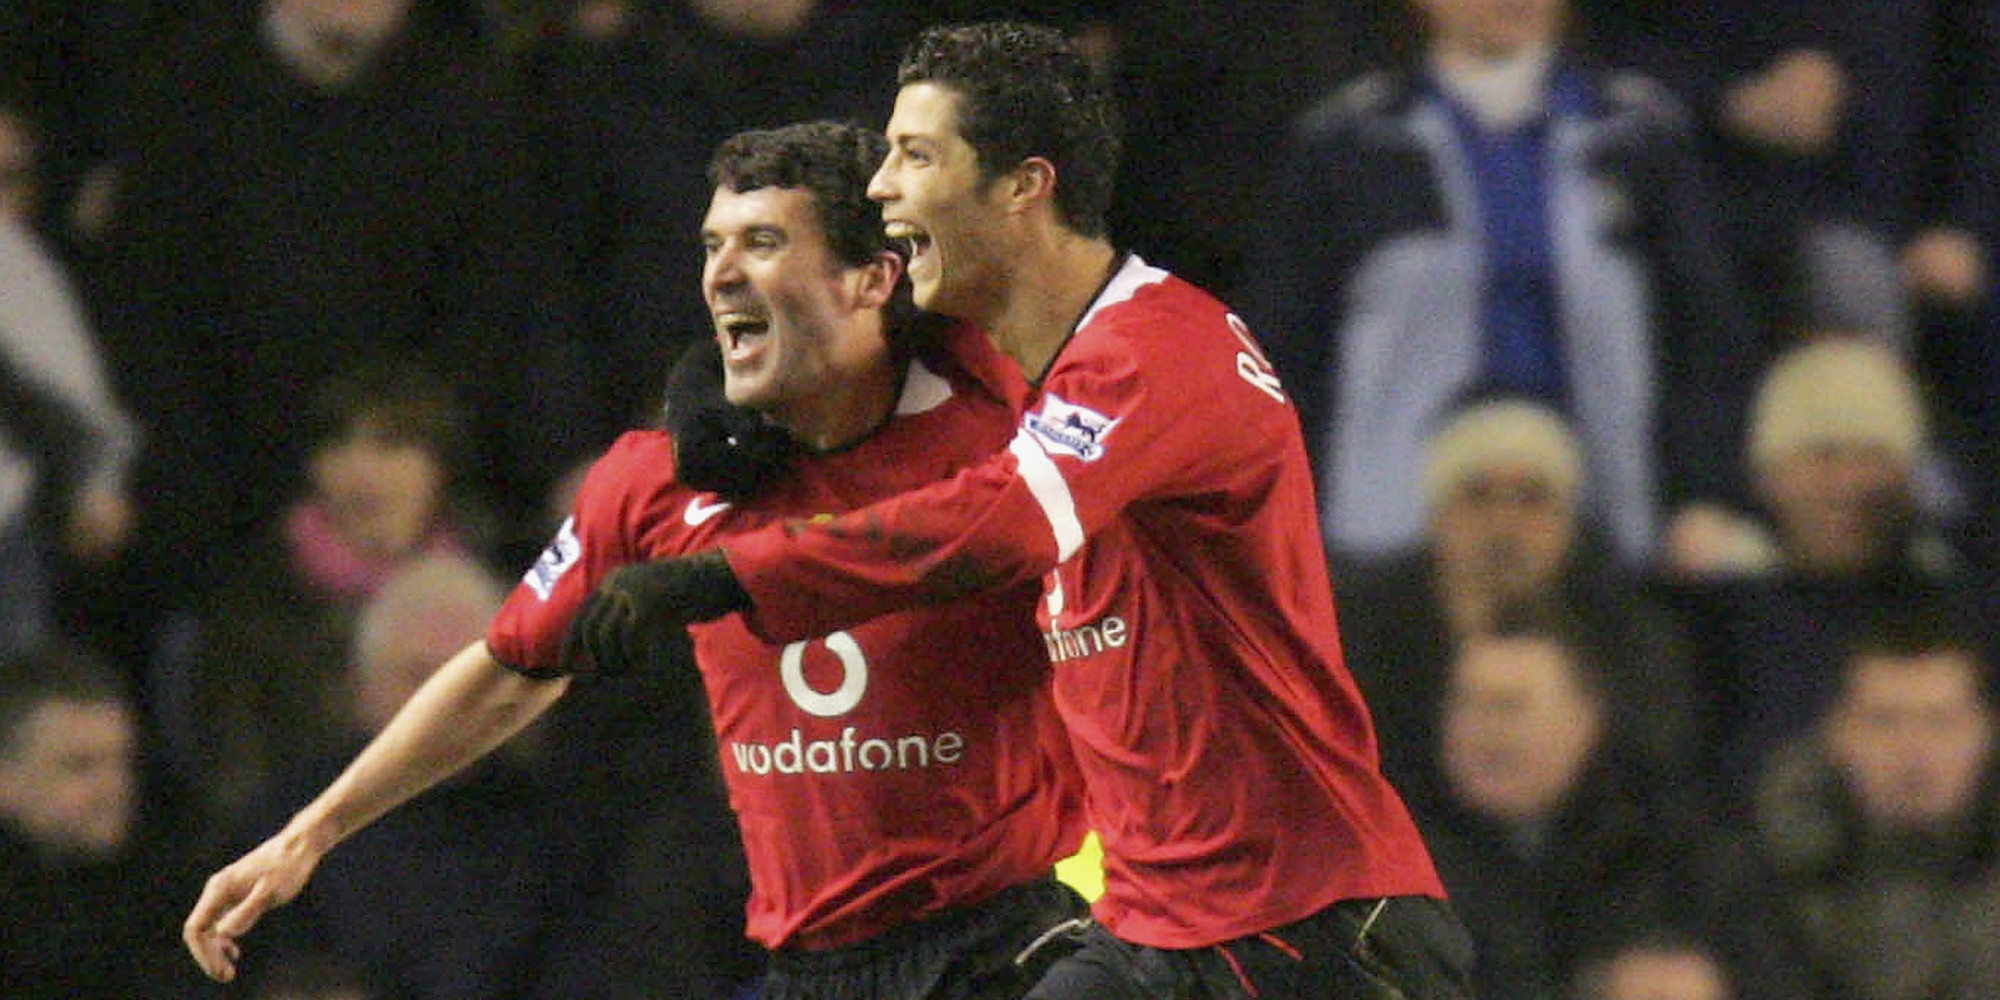 Roy Keane and Manchester United Ten years after his acrimonious exit